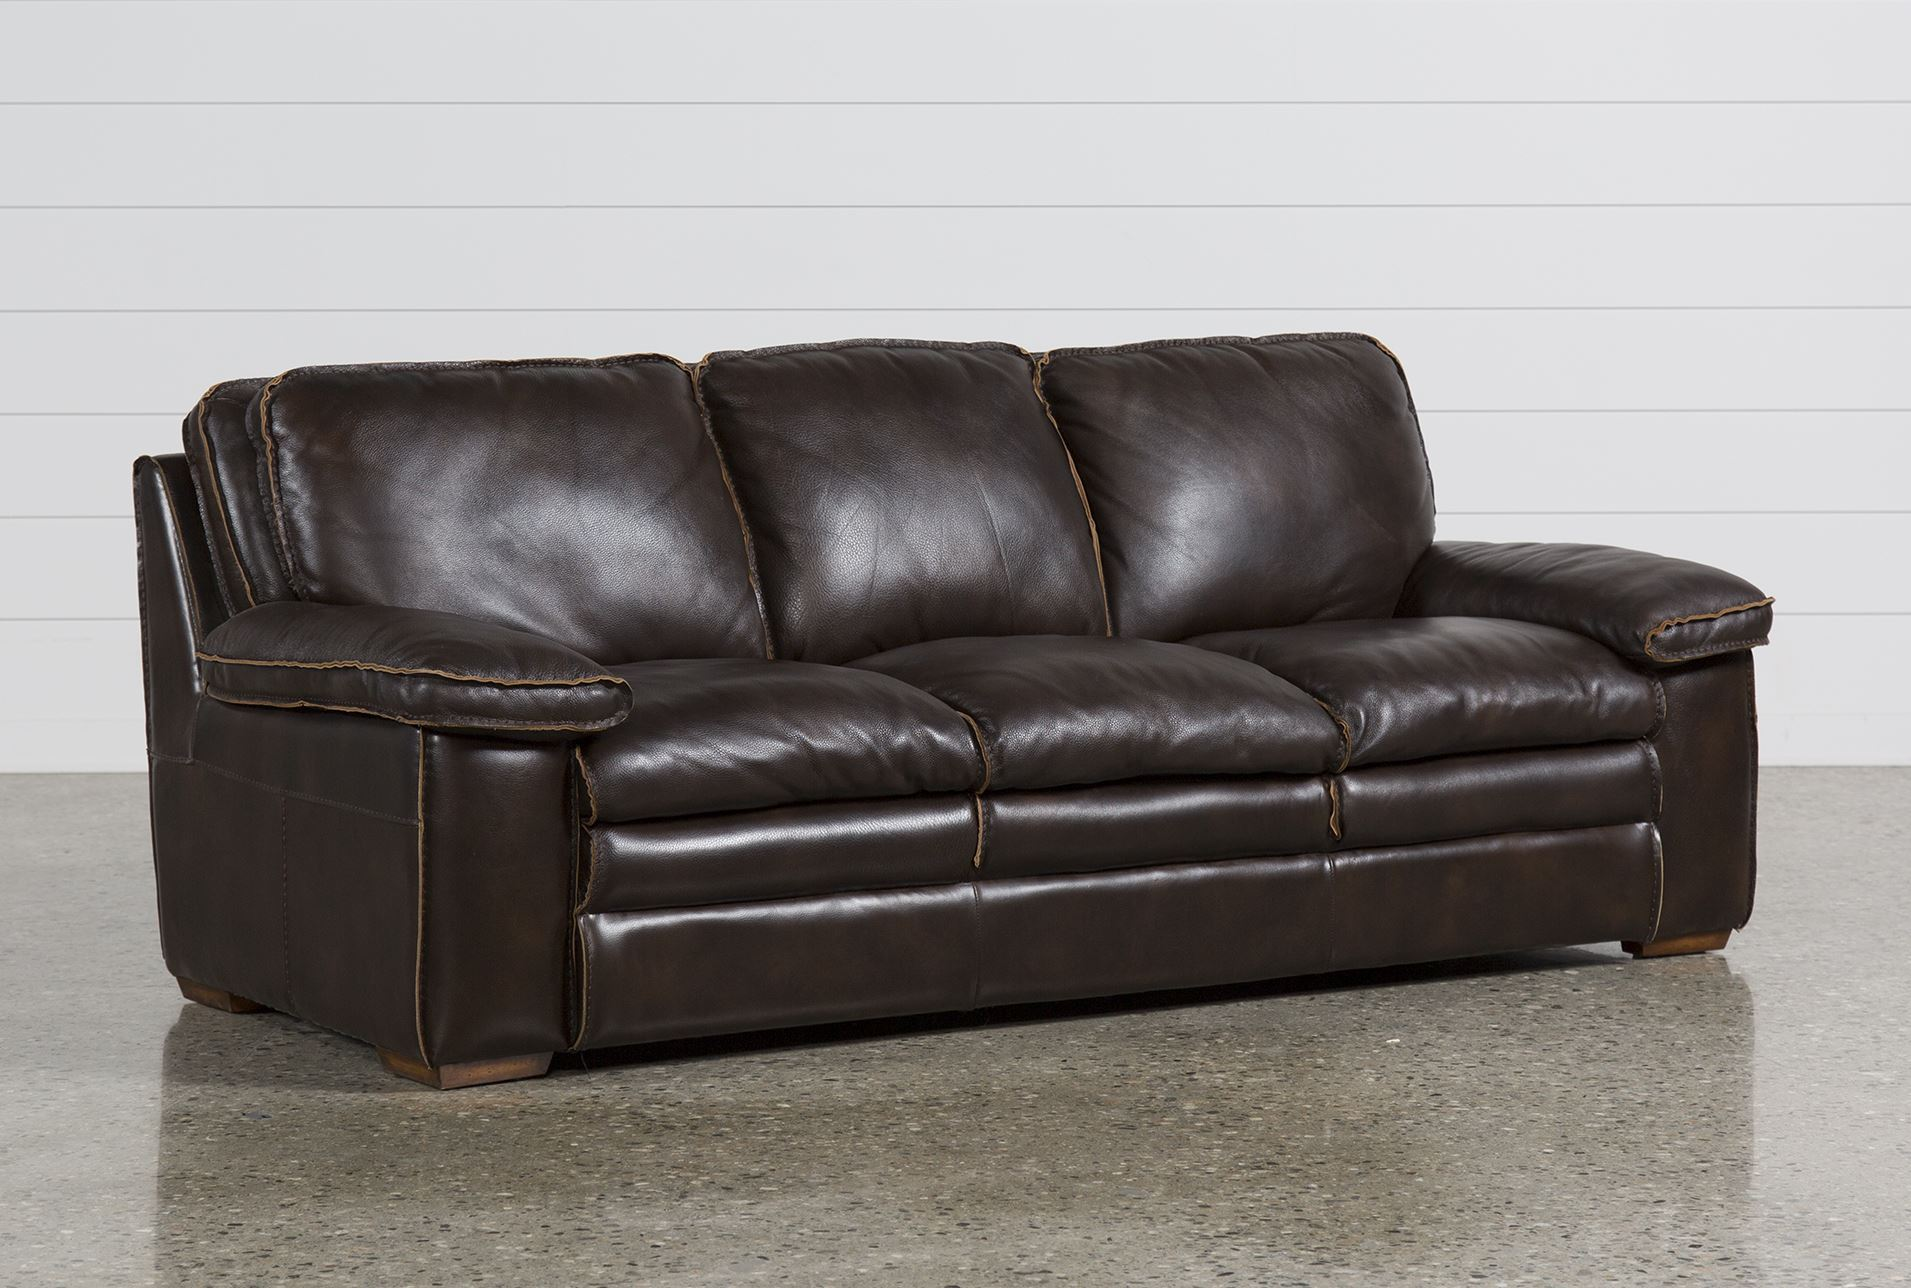 - Leather Sofa Wallpapers, Pattern, HQ Leather Sofa Pictures 4K